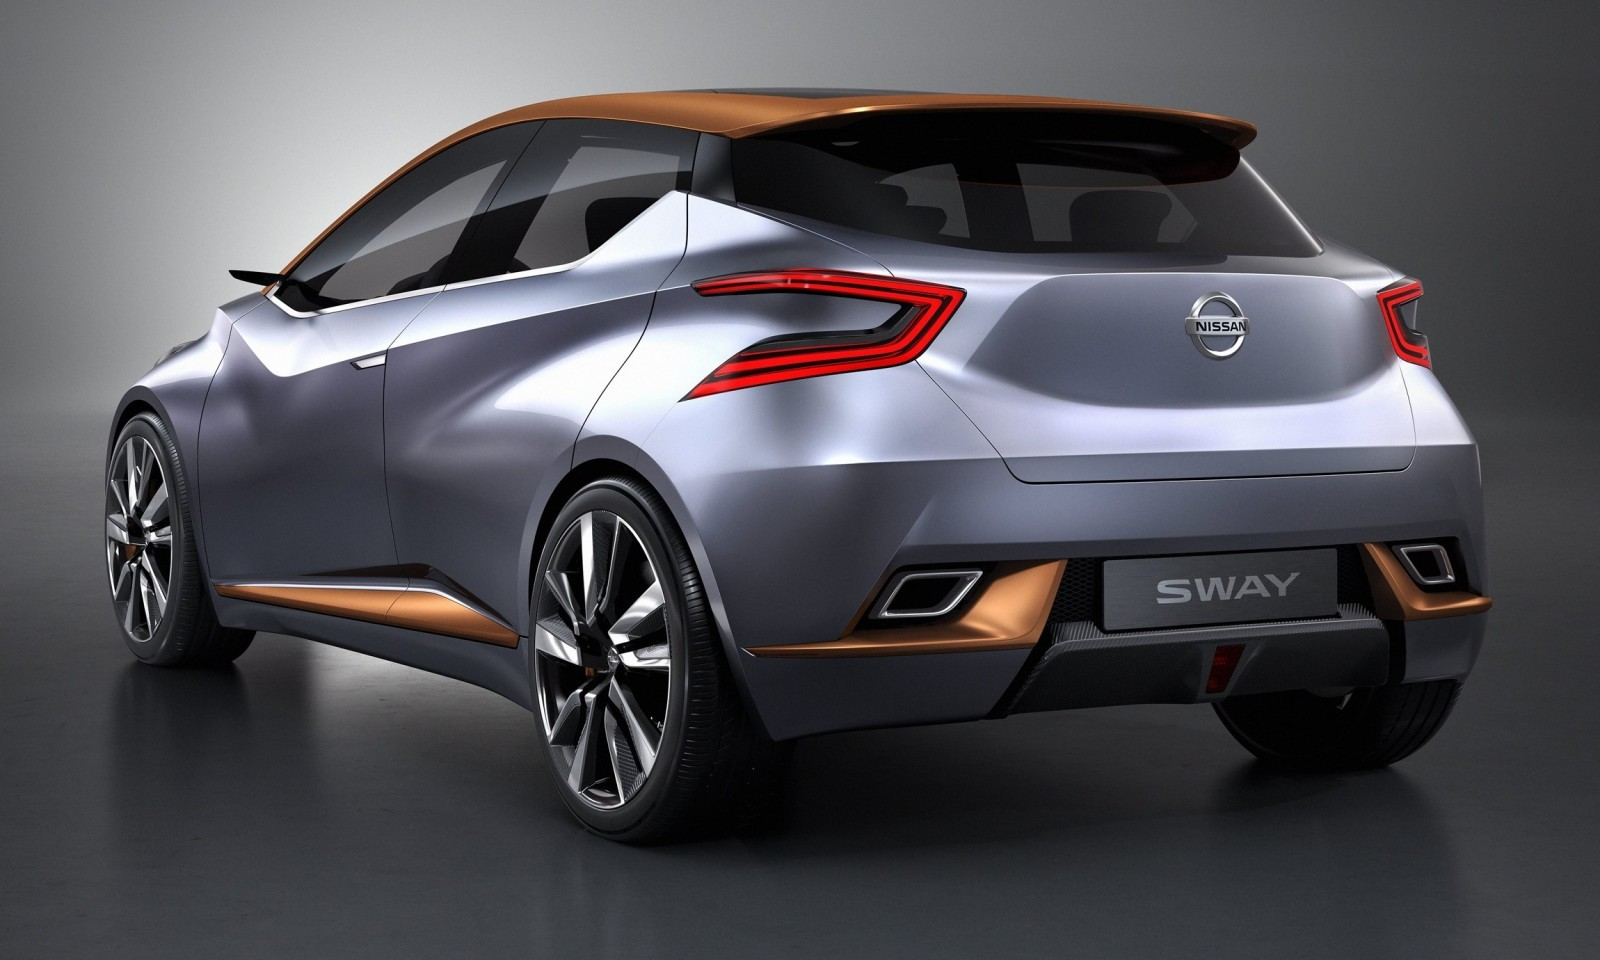 2015 Nissan SWAY Concept 16